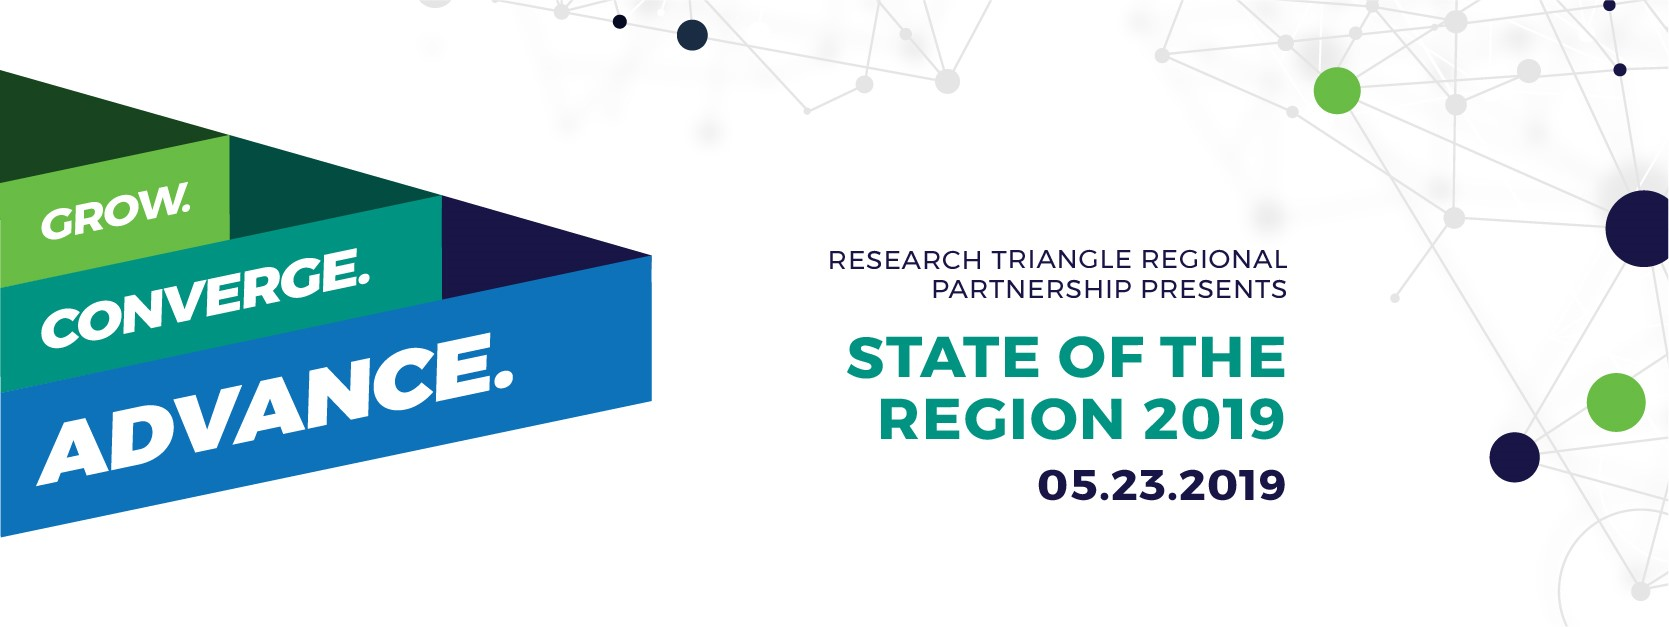 State of the Region 2019